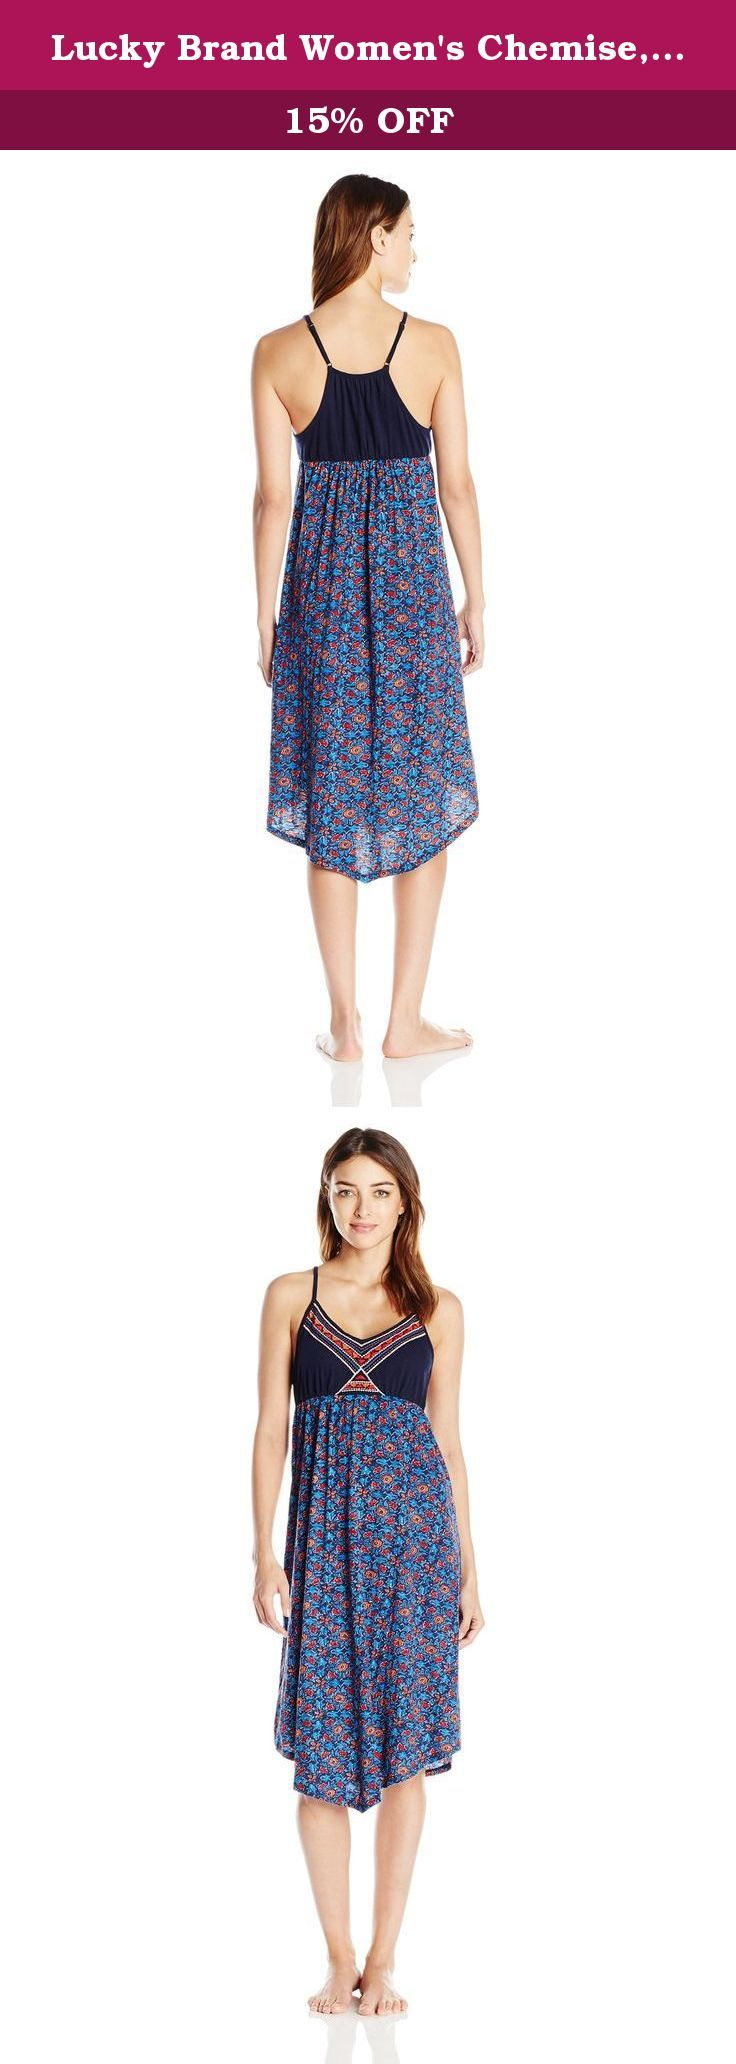 Lucky Brand Women's Chemise, Navy Block Print, Large. Light, comfortable, and easy to live in, this Lucky Brand chemise will be your new favorite.